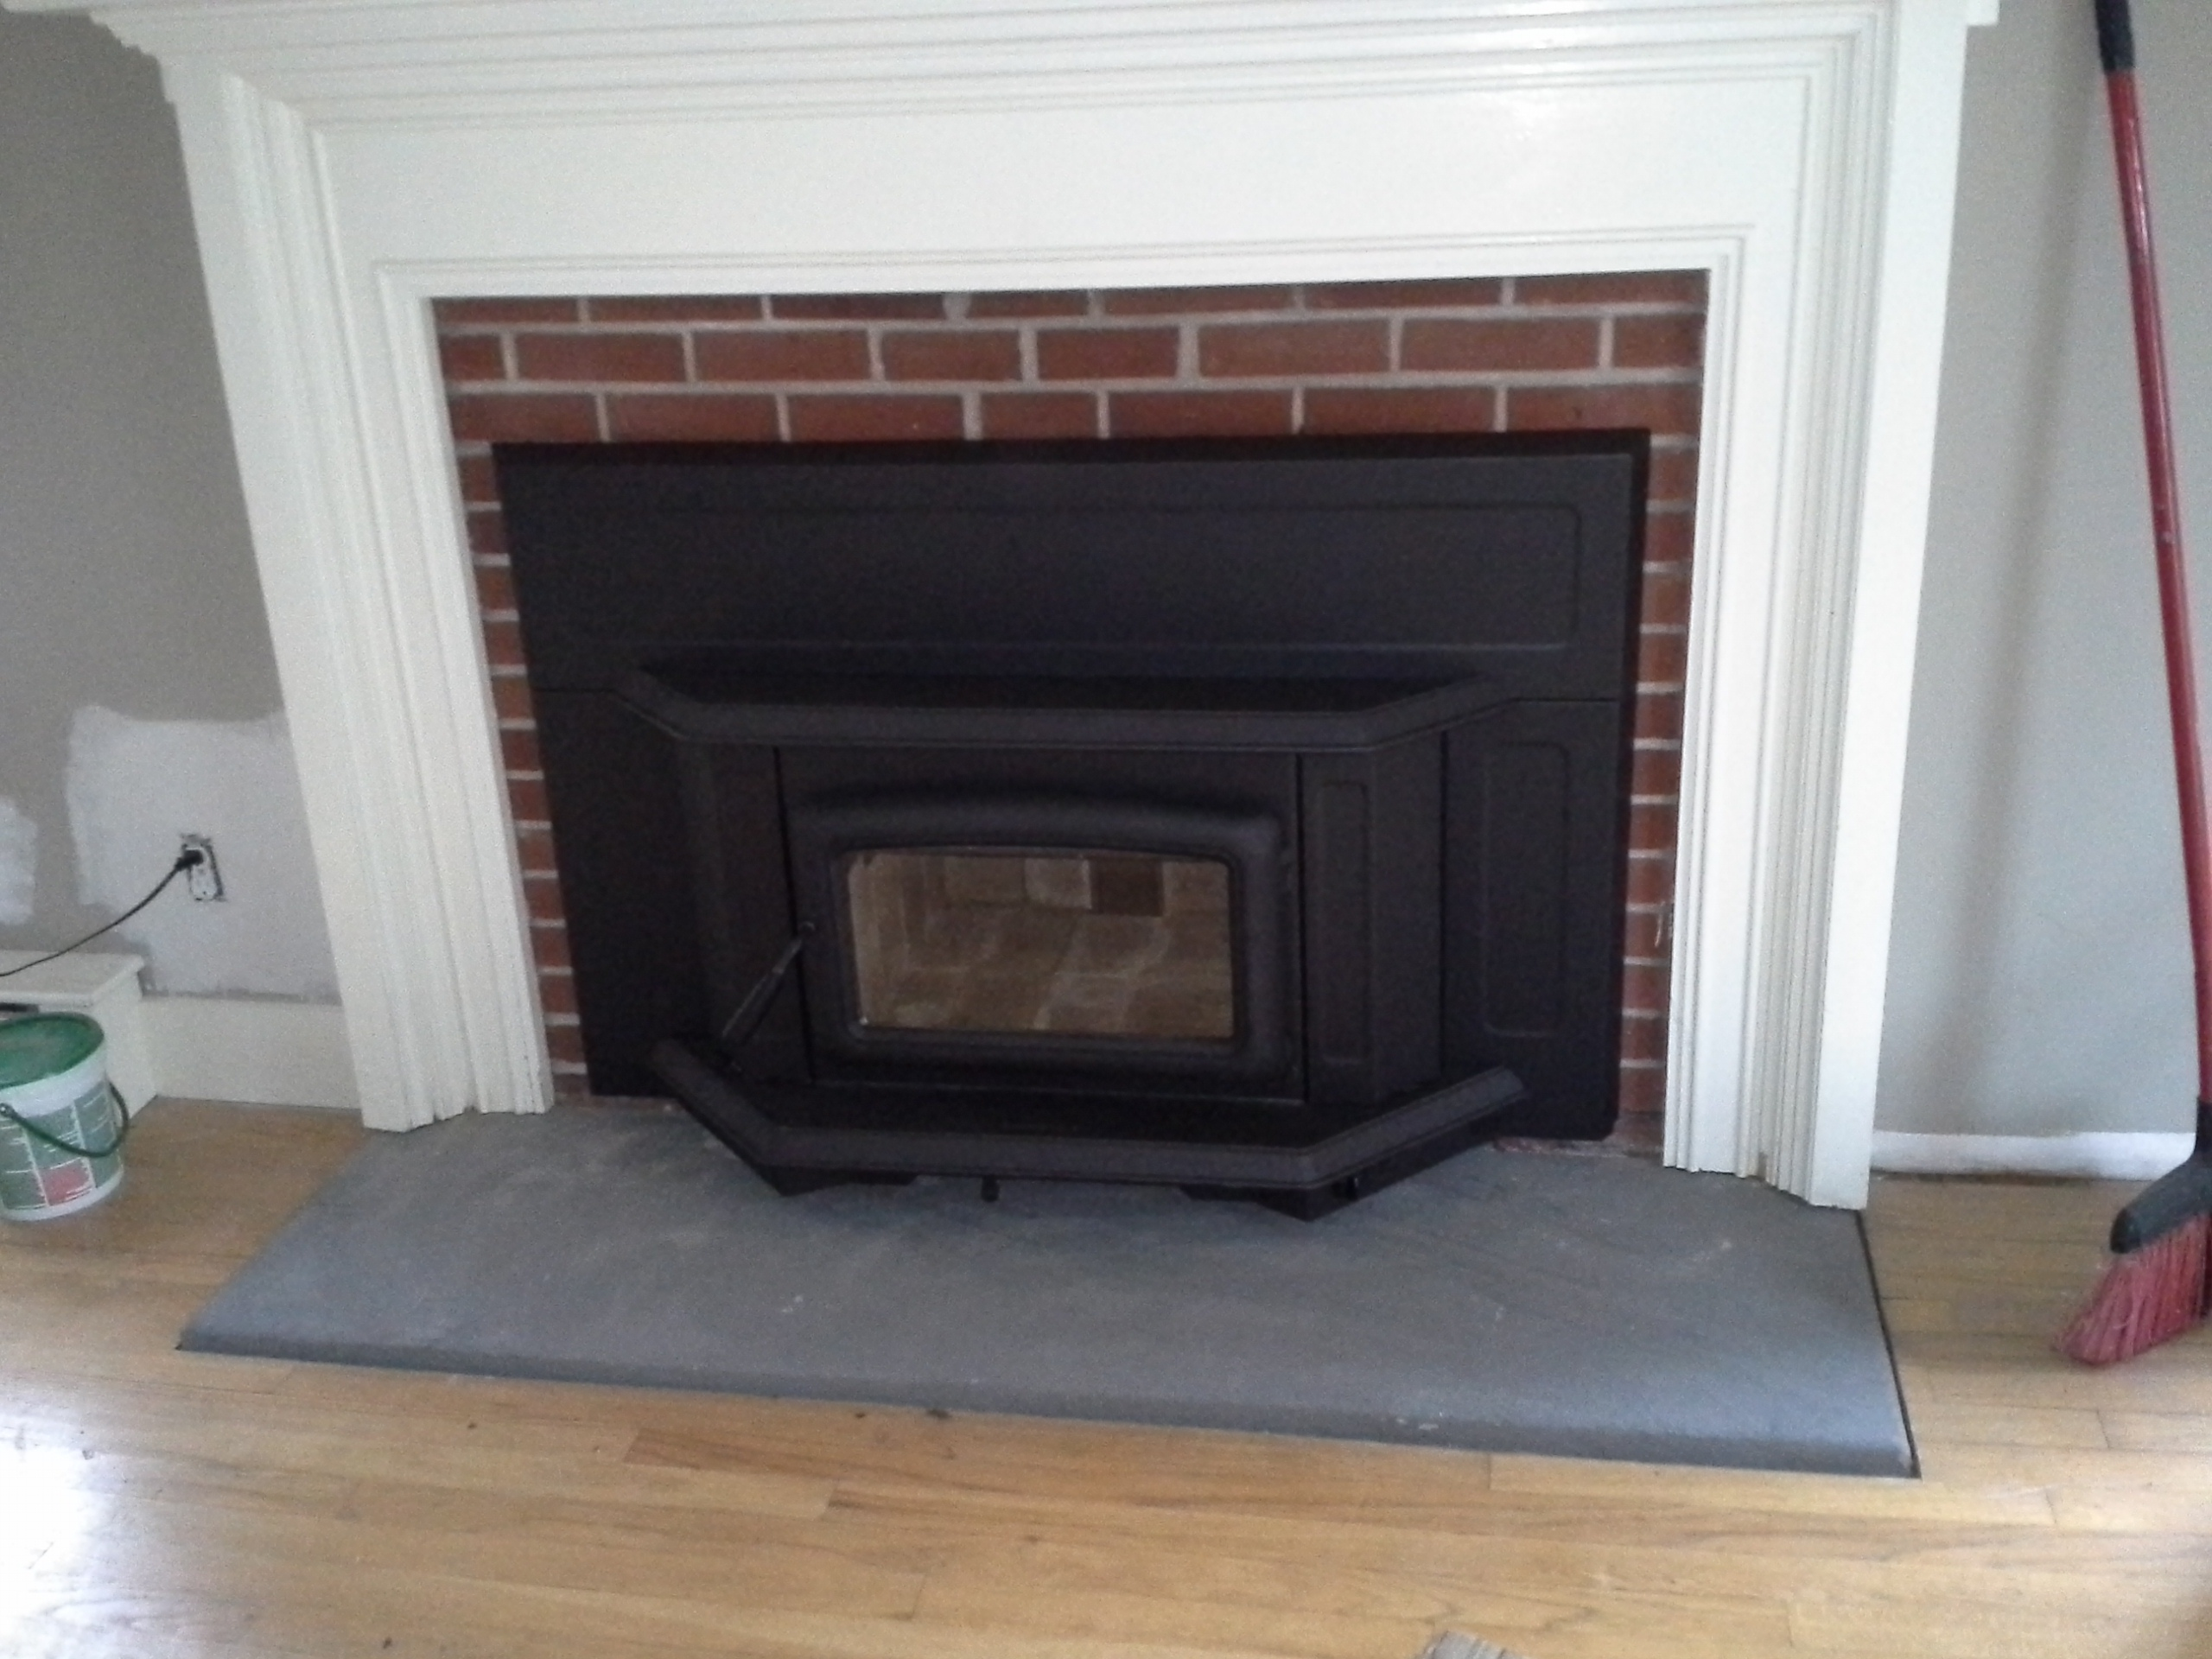 PACIFIC ENERGY WOOD BURNING INSERT...Traditional Summit Series